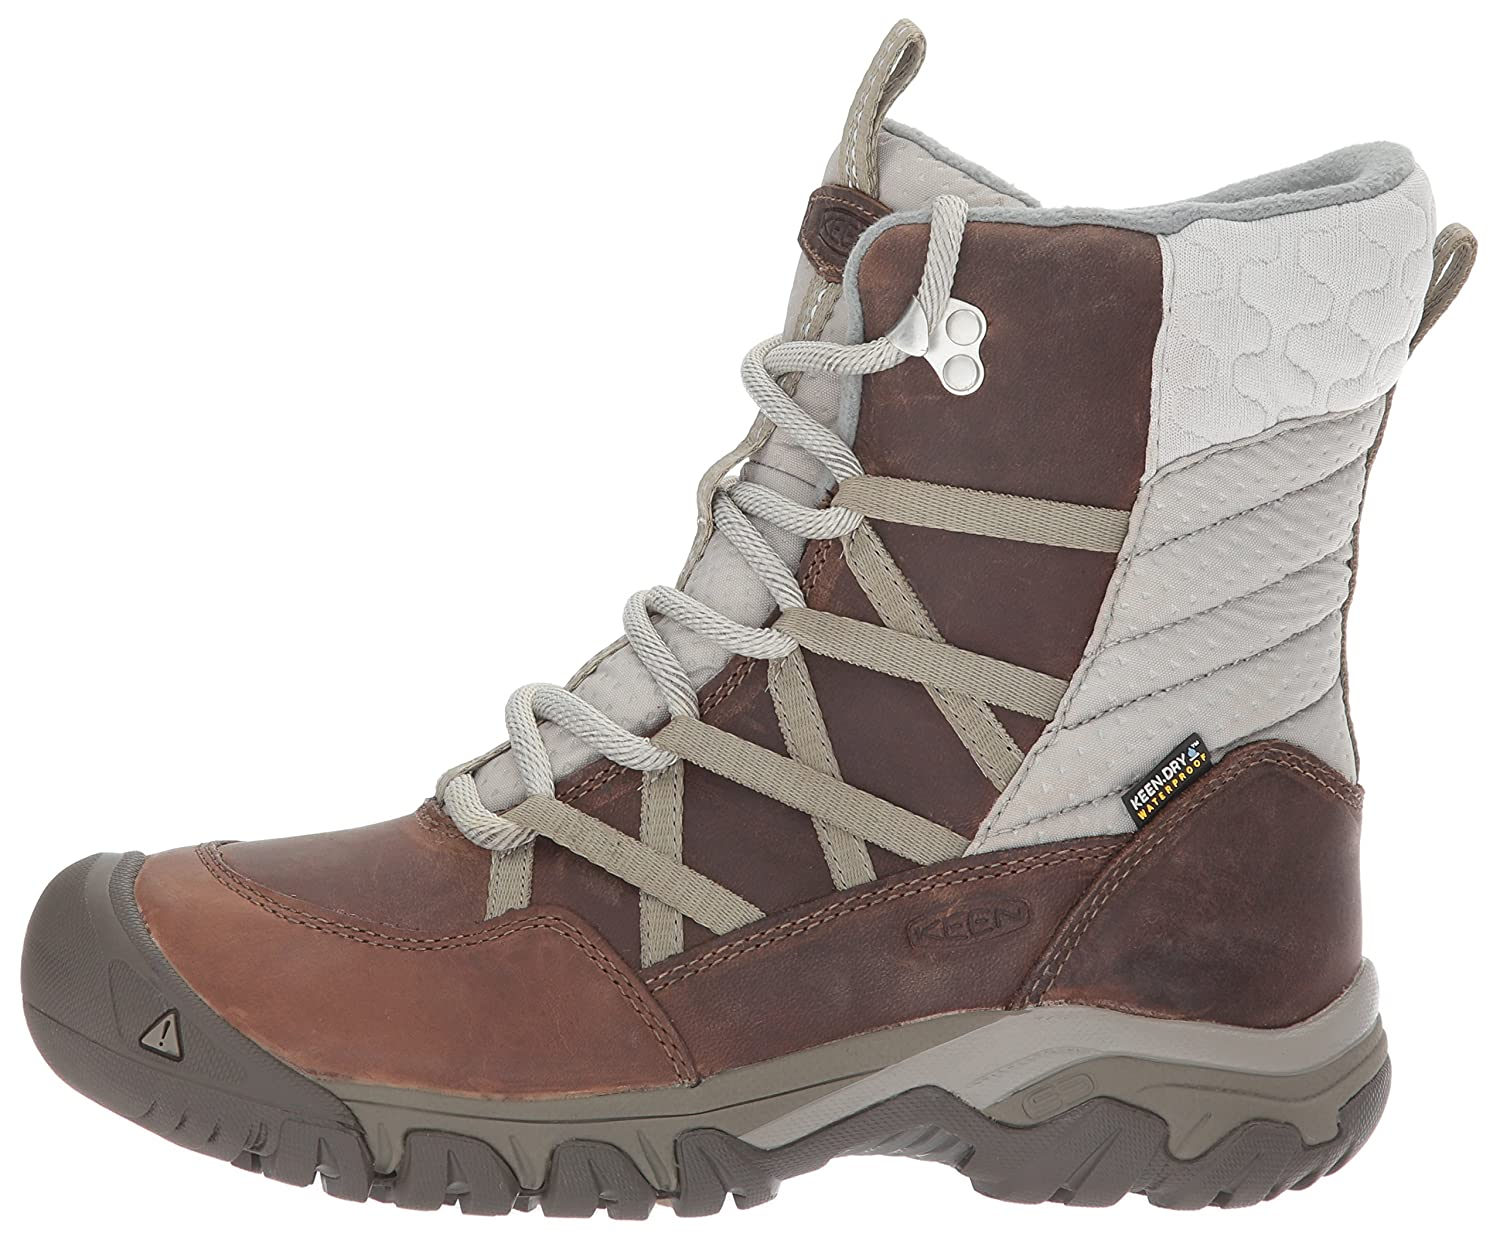 KEEN Women's Hoodoo III Lace up-w B(M) Snow Boot B01MSNIIBS 6 B(M) up-w US|Coconut/Plaza Taupe c46c0c